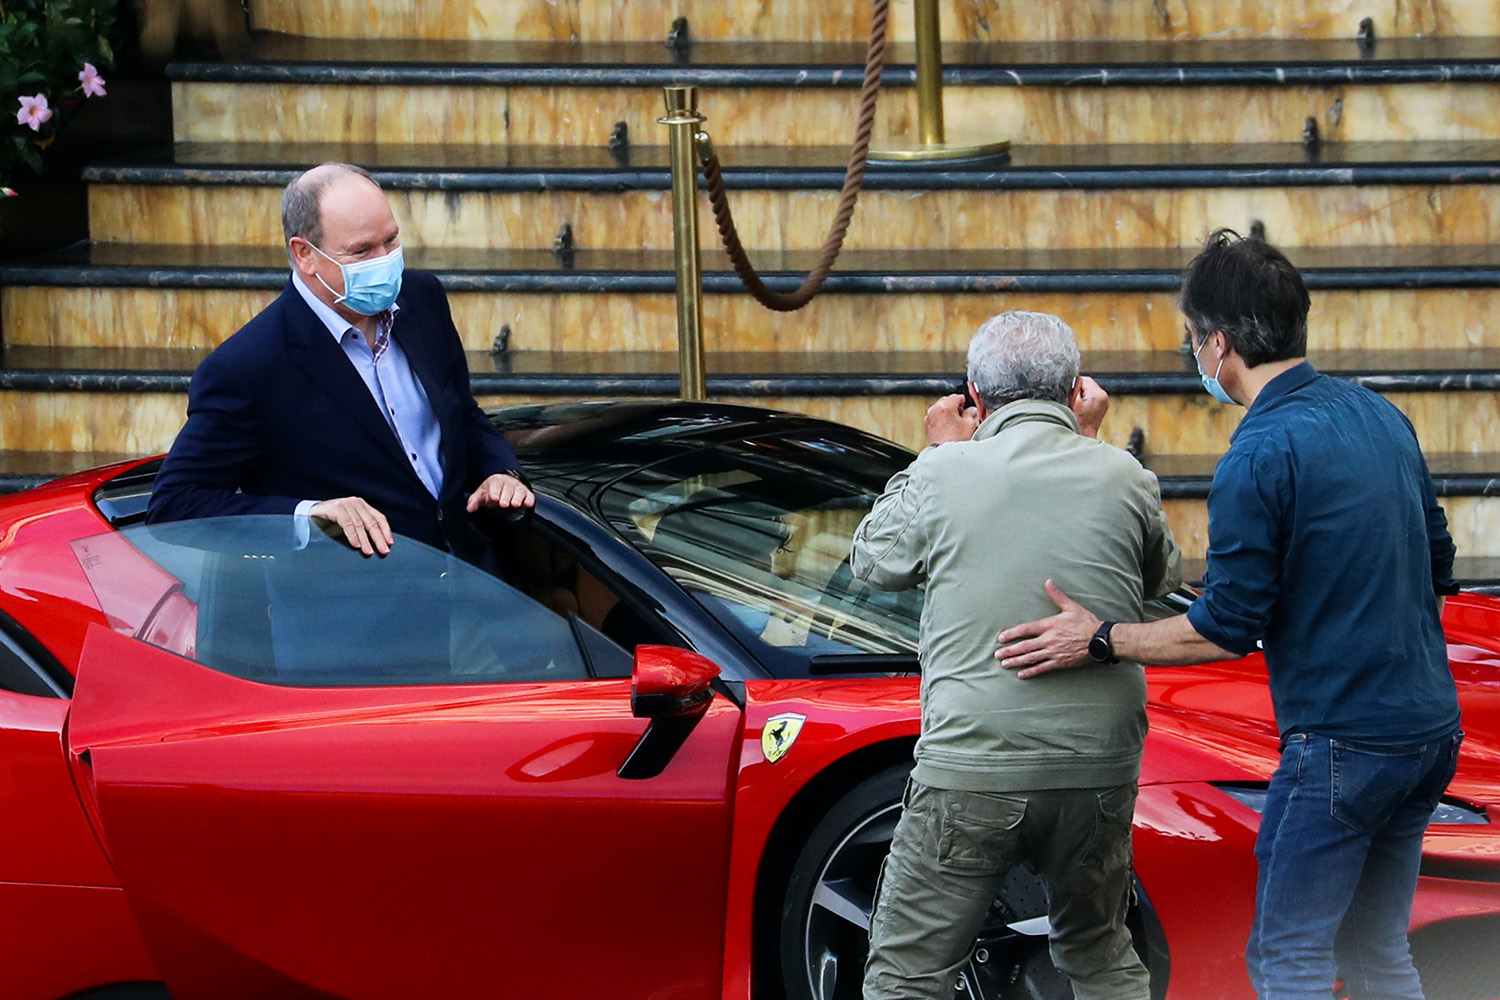 French director Claude Lelouch films Monaco's Prince Albert II as he gets in a Ferrari while filming a short movie in Monaco on May 24.